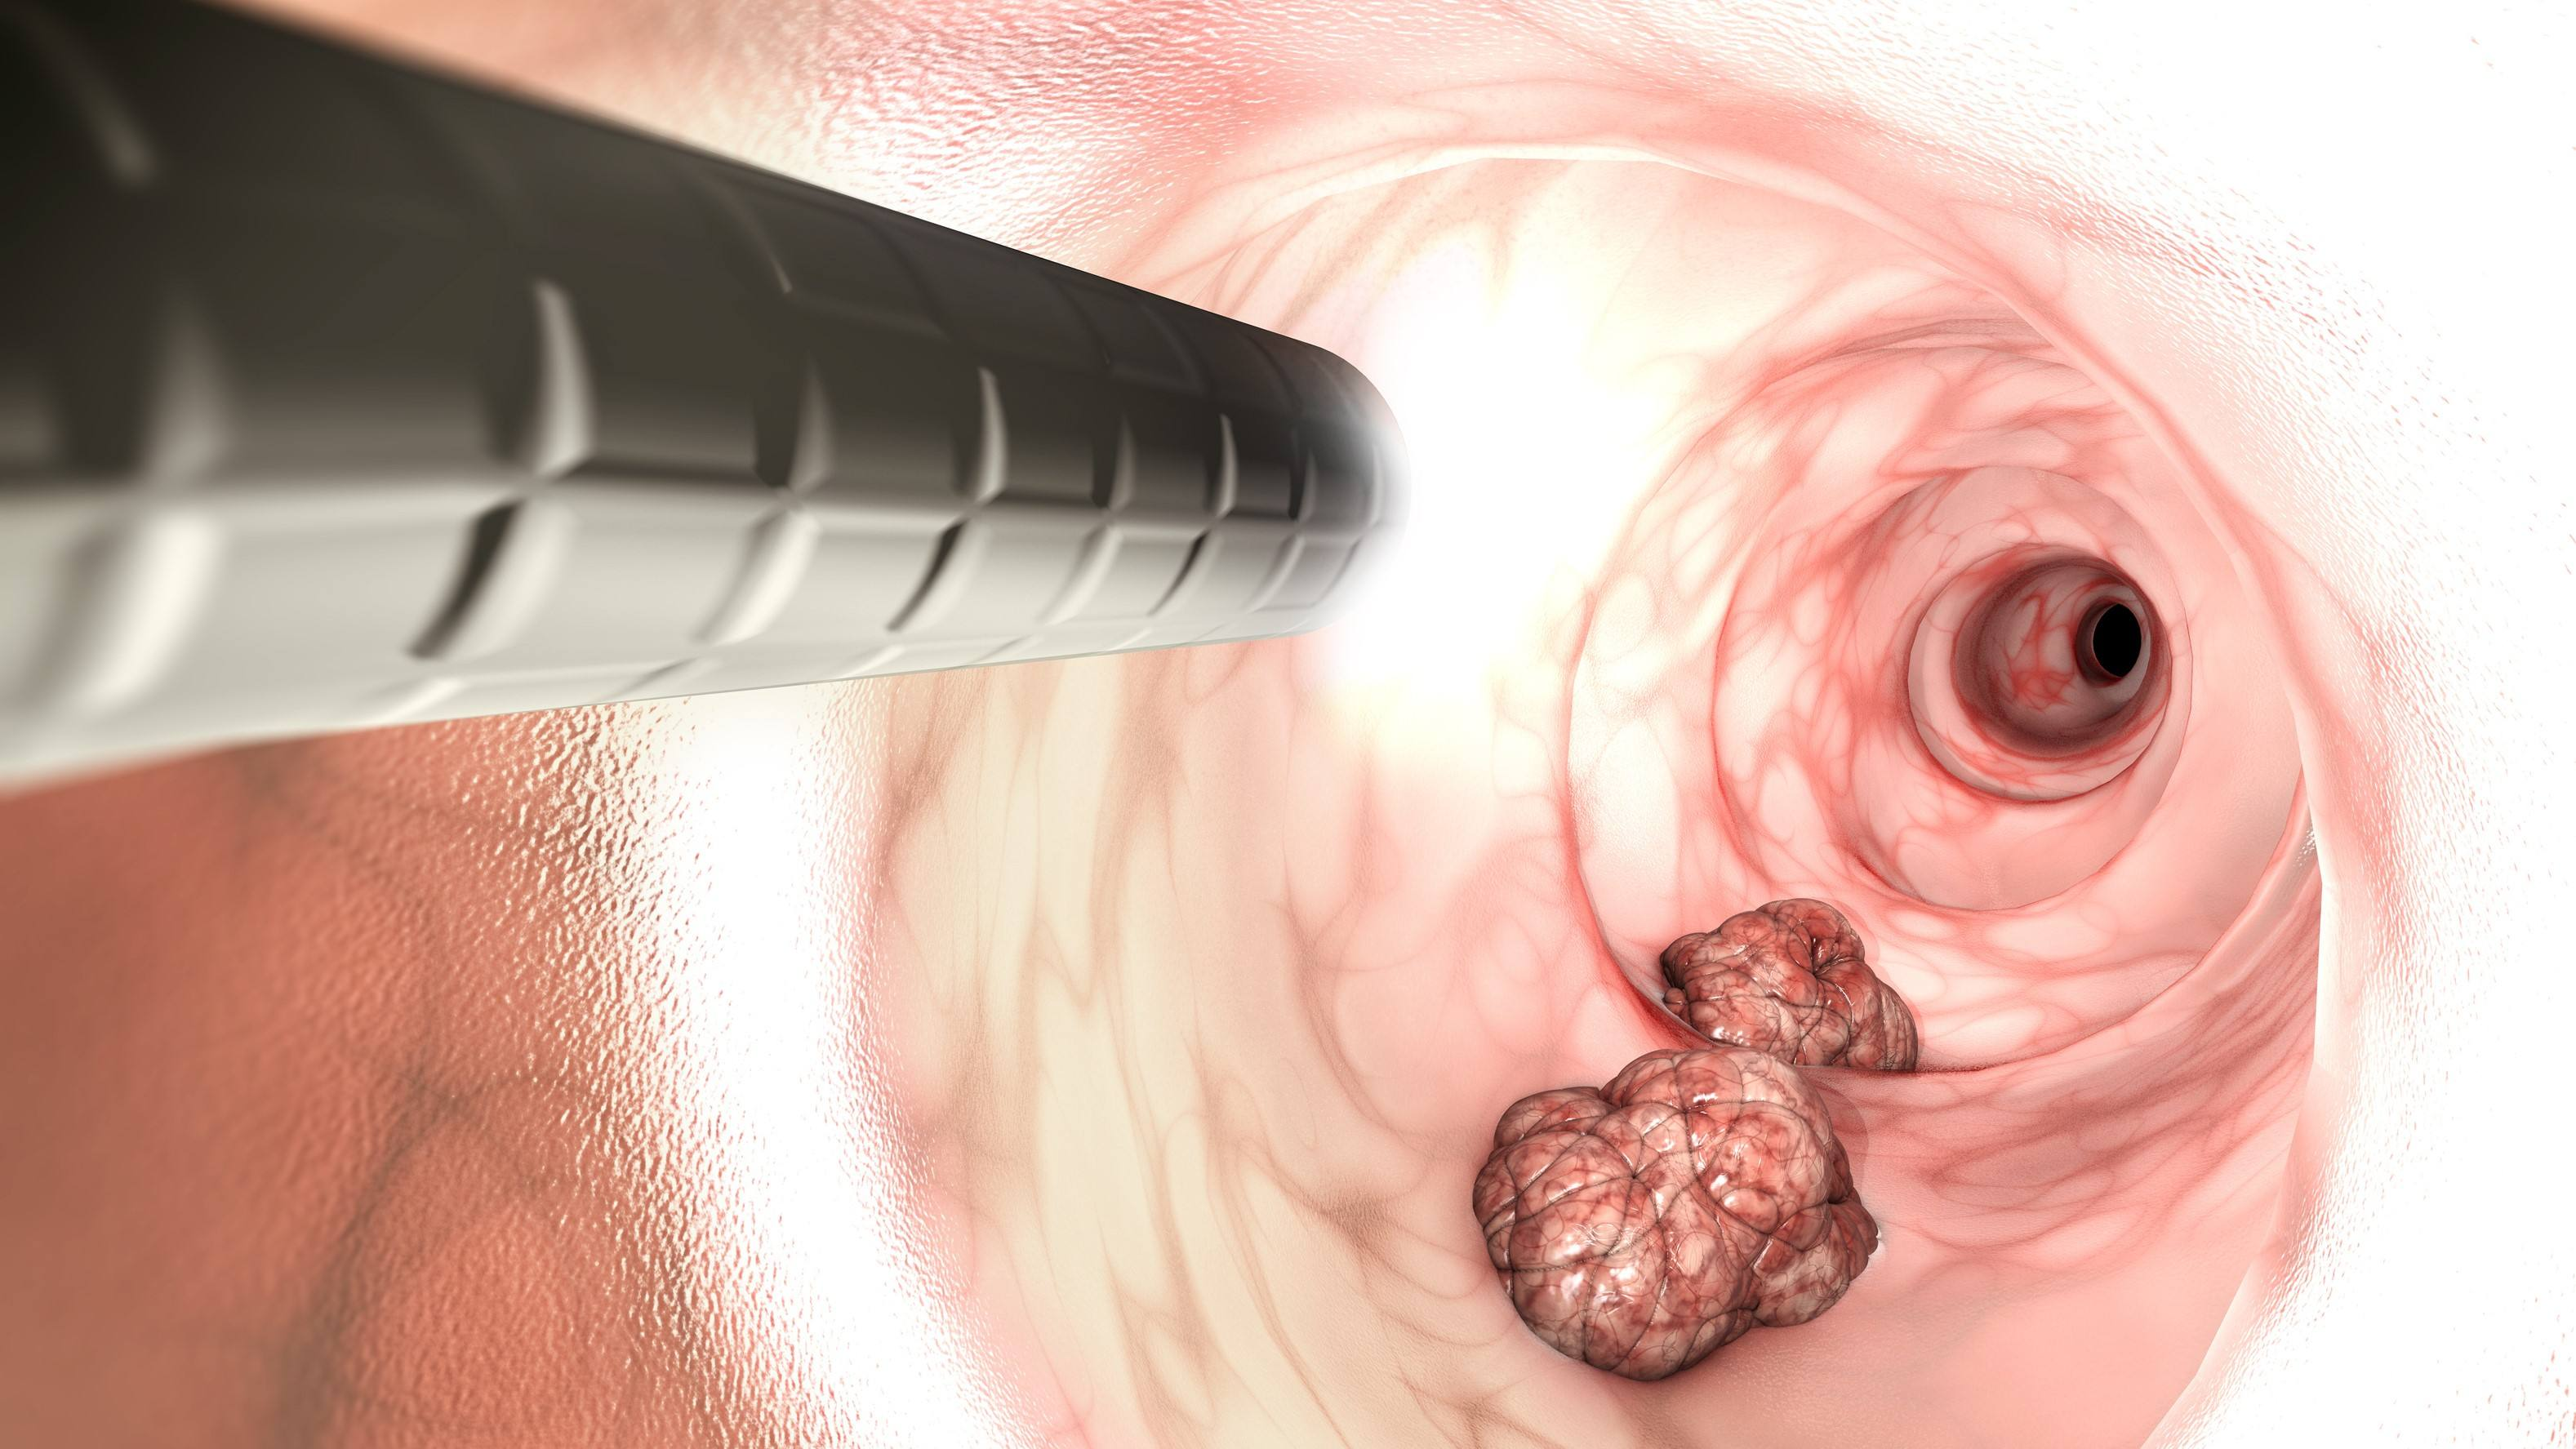 Rise in colorectal cancer among adults younger than 50 leads to new screening guidelines